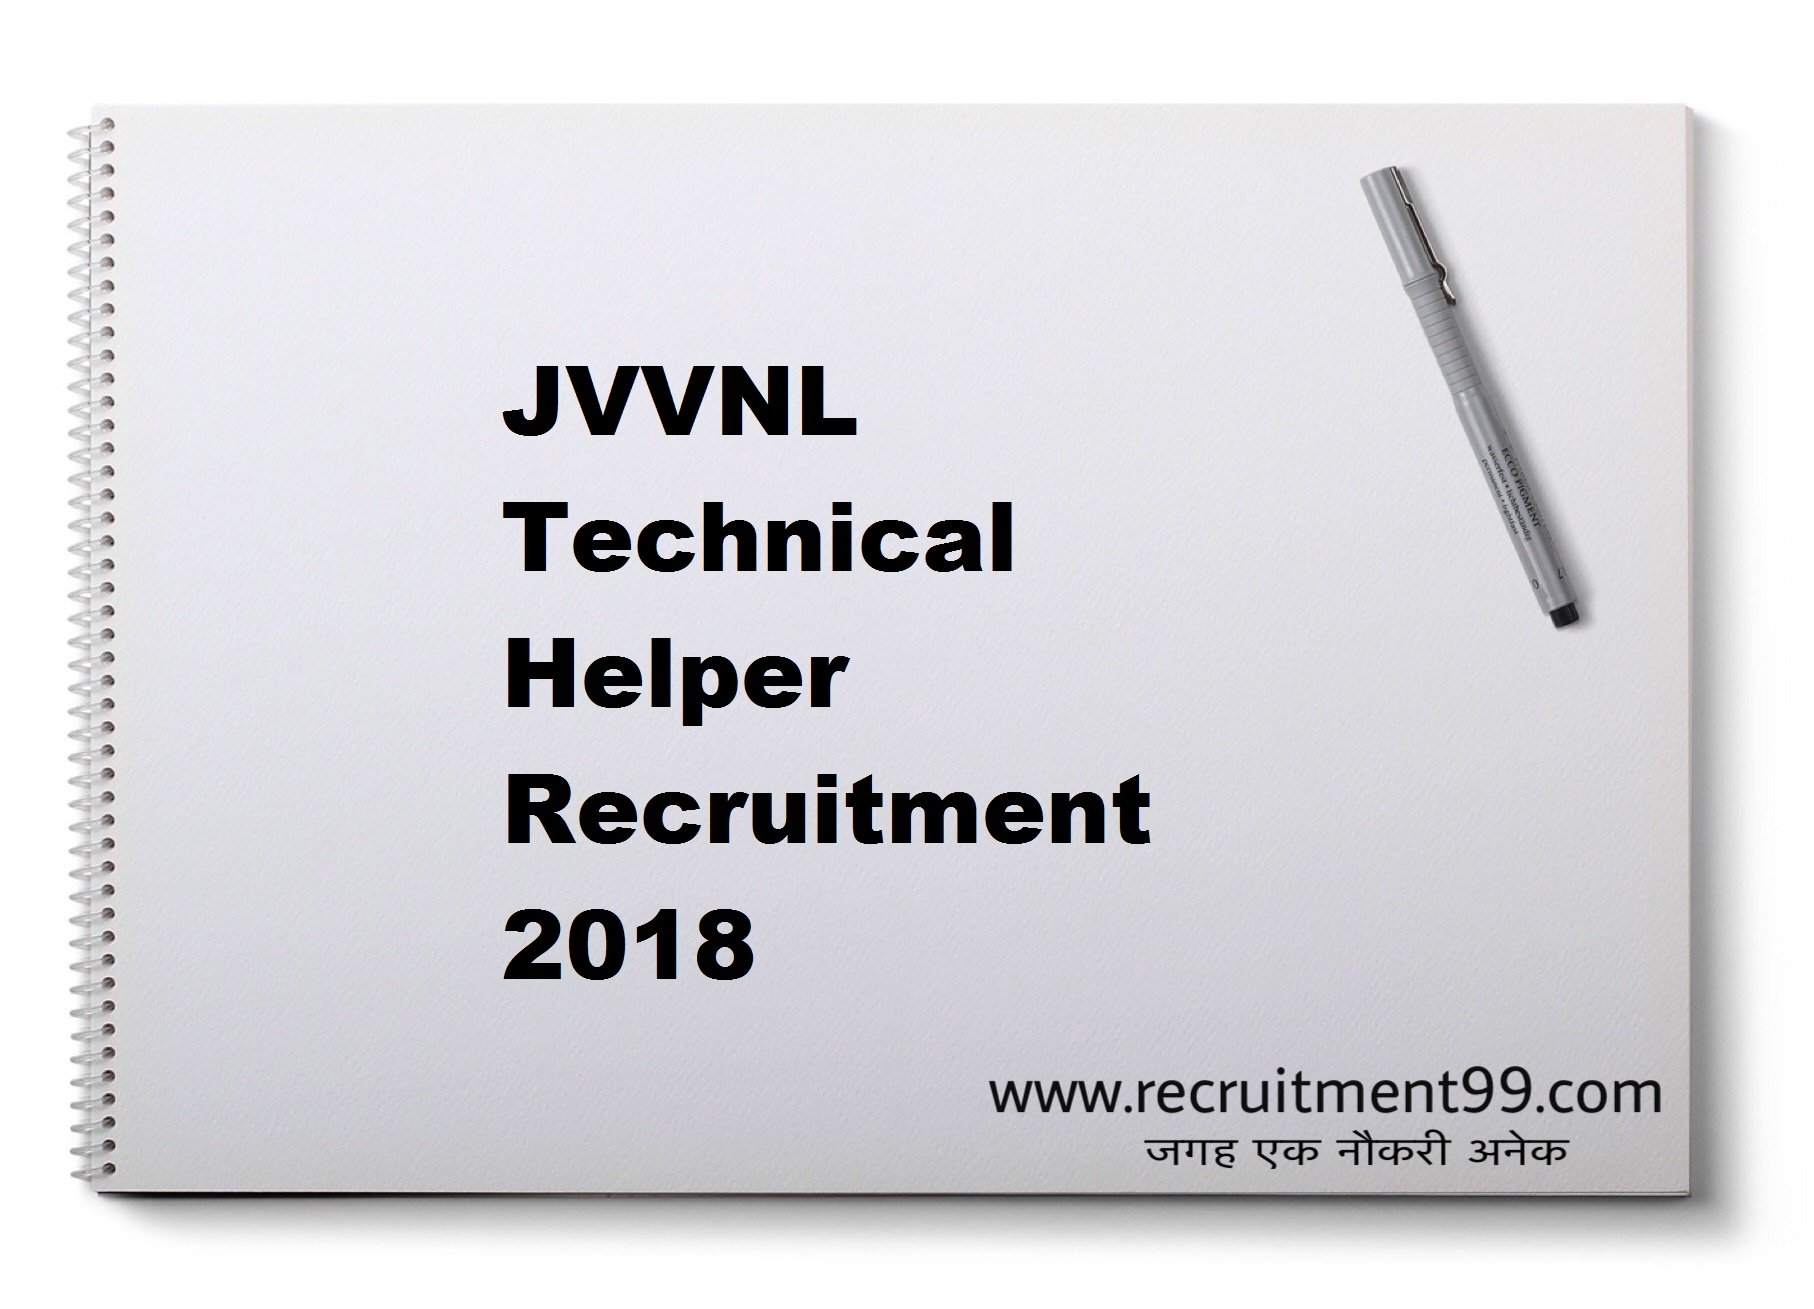 JVVNL Technical Helper Recruitment Admit Card Result 2018